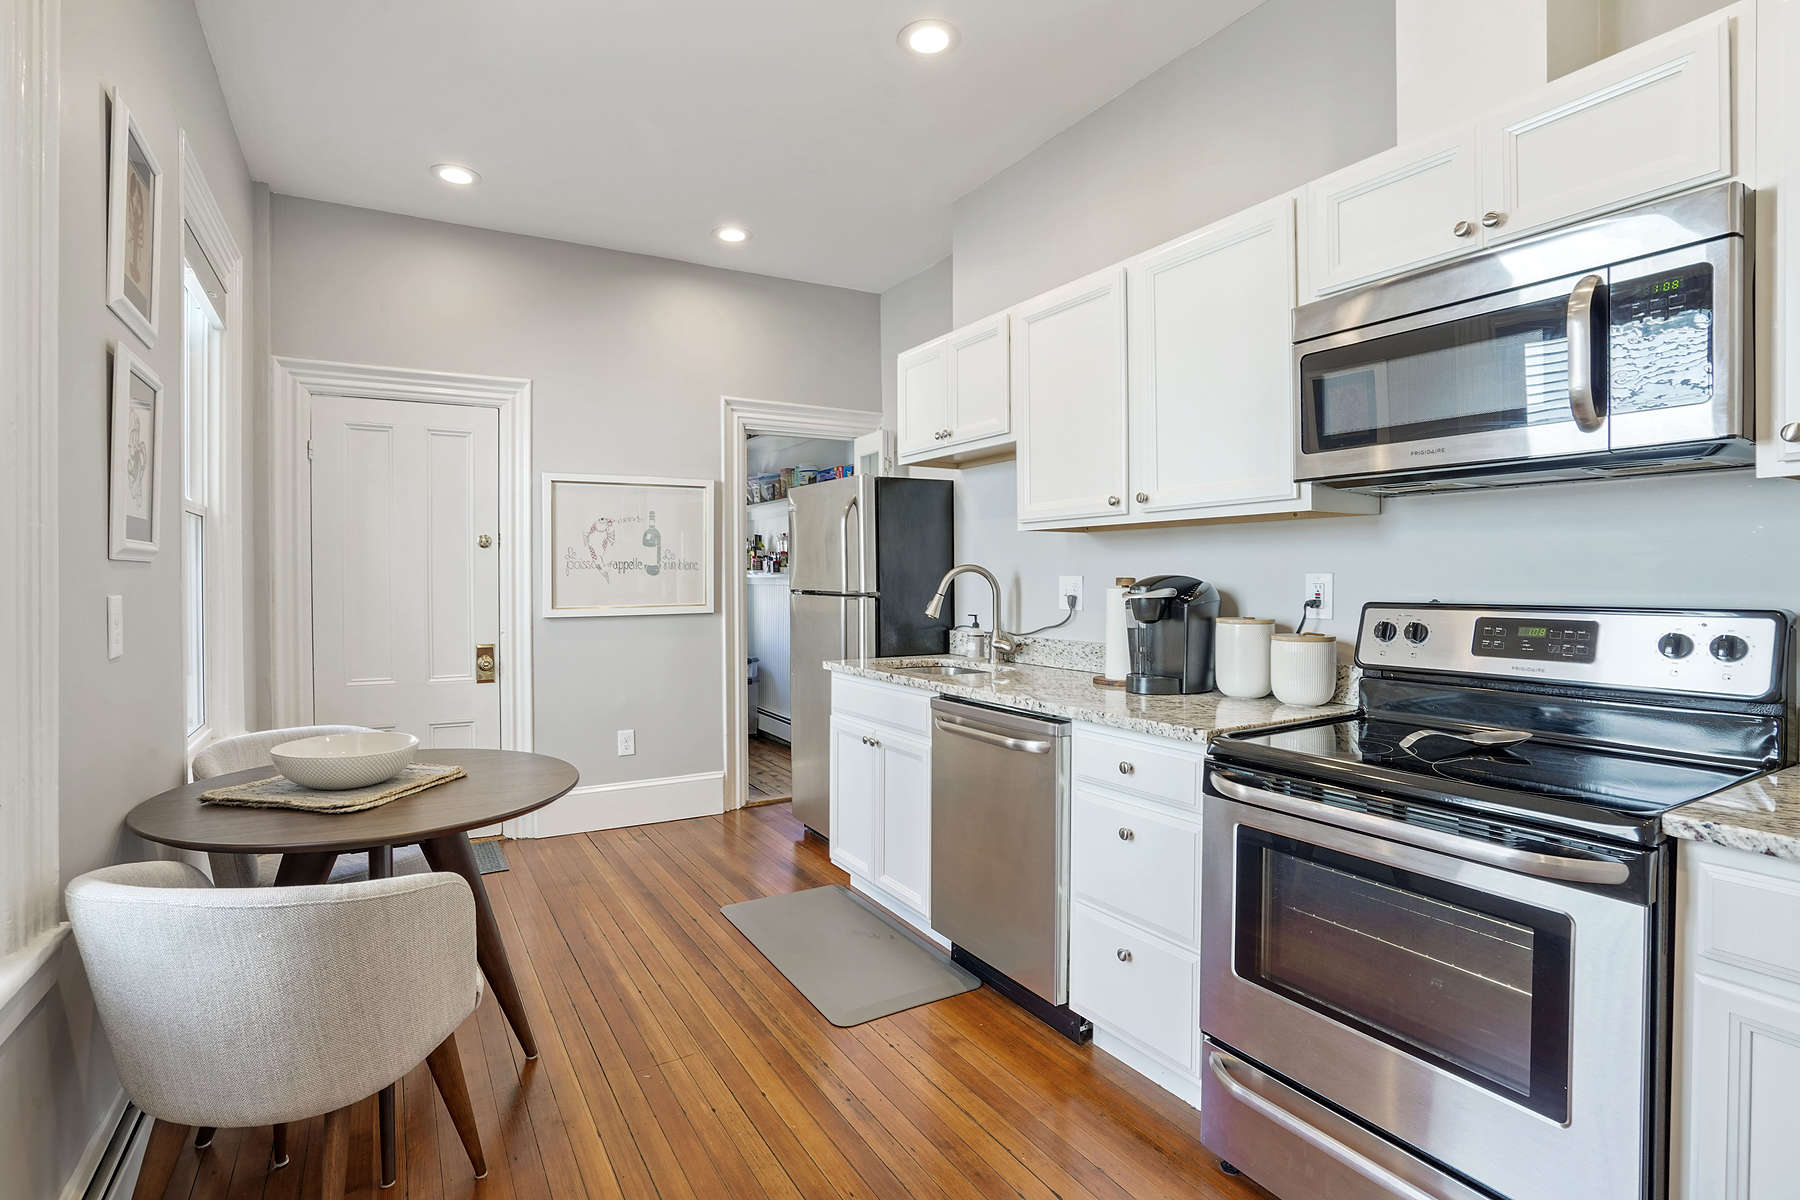 Additional photo for property listing at 41 Pearl Street - Unit 1 41 Pearl St 1 Boston, Massachusetts 02129 United States